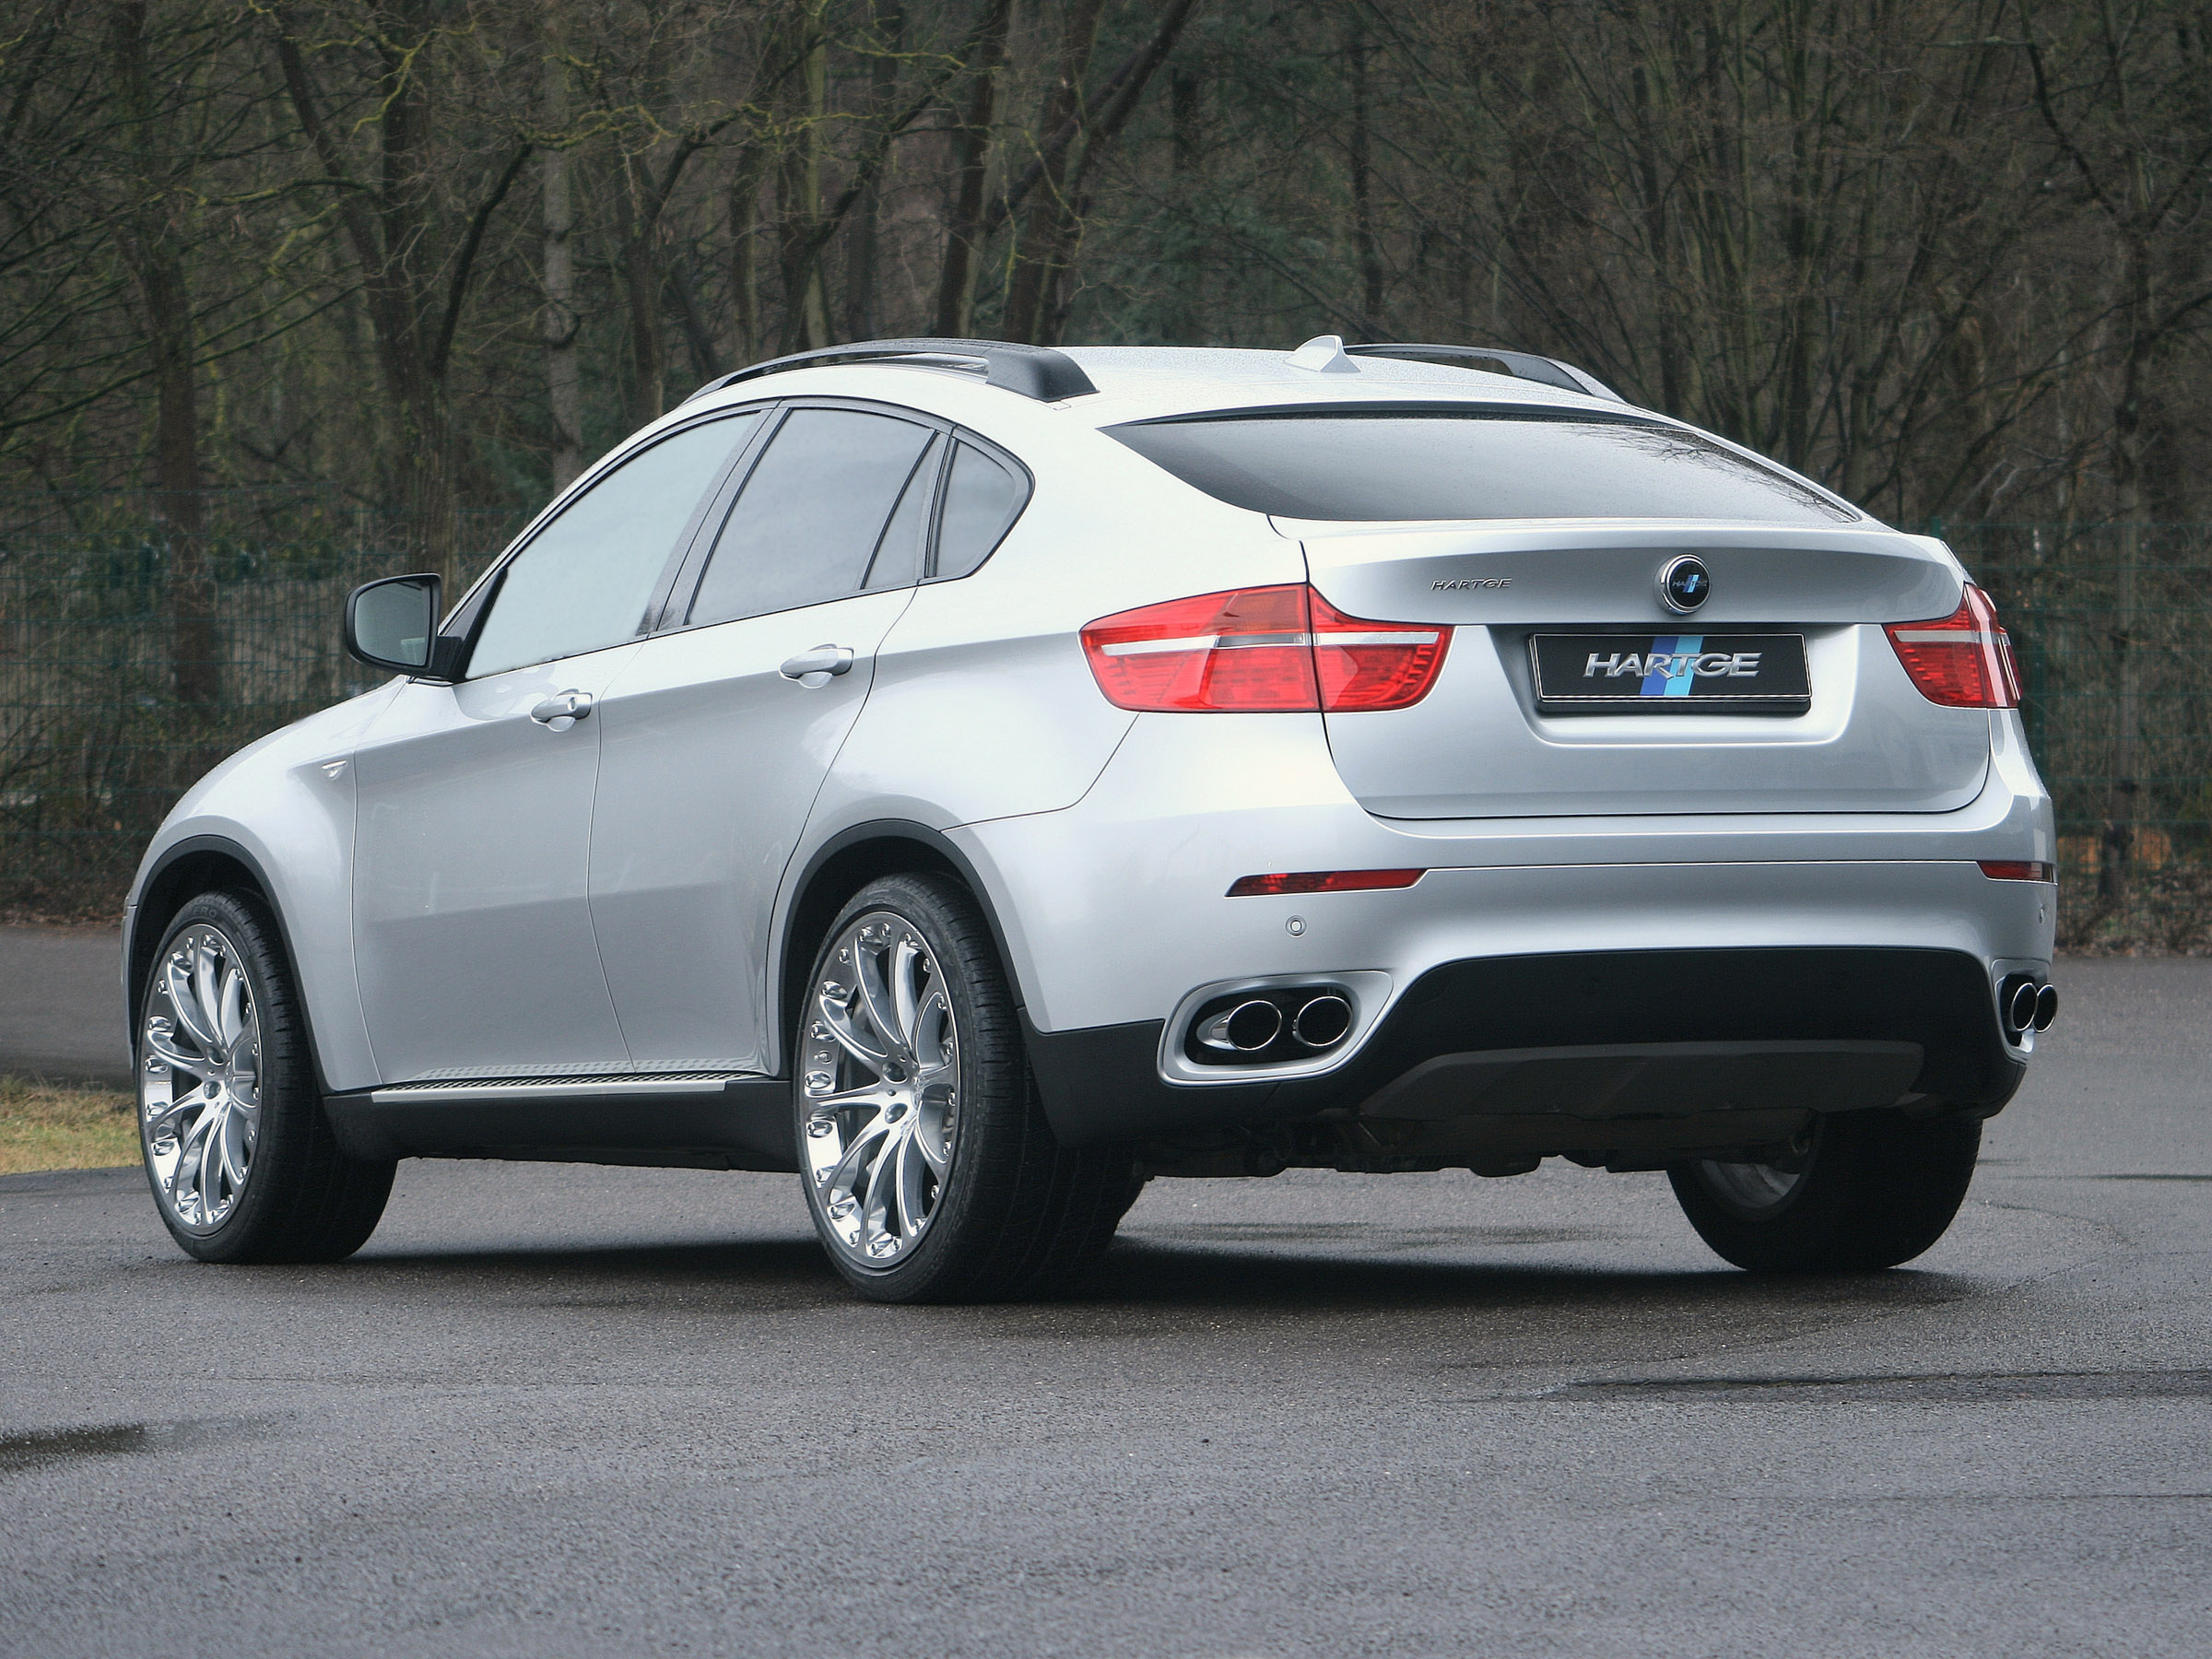 Bmw X6 Hartge Picture 22299